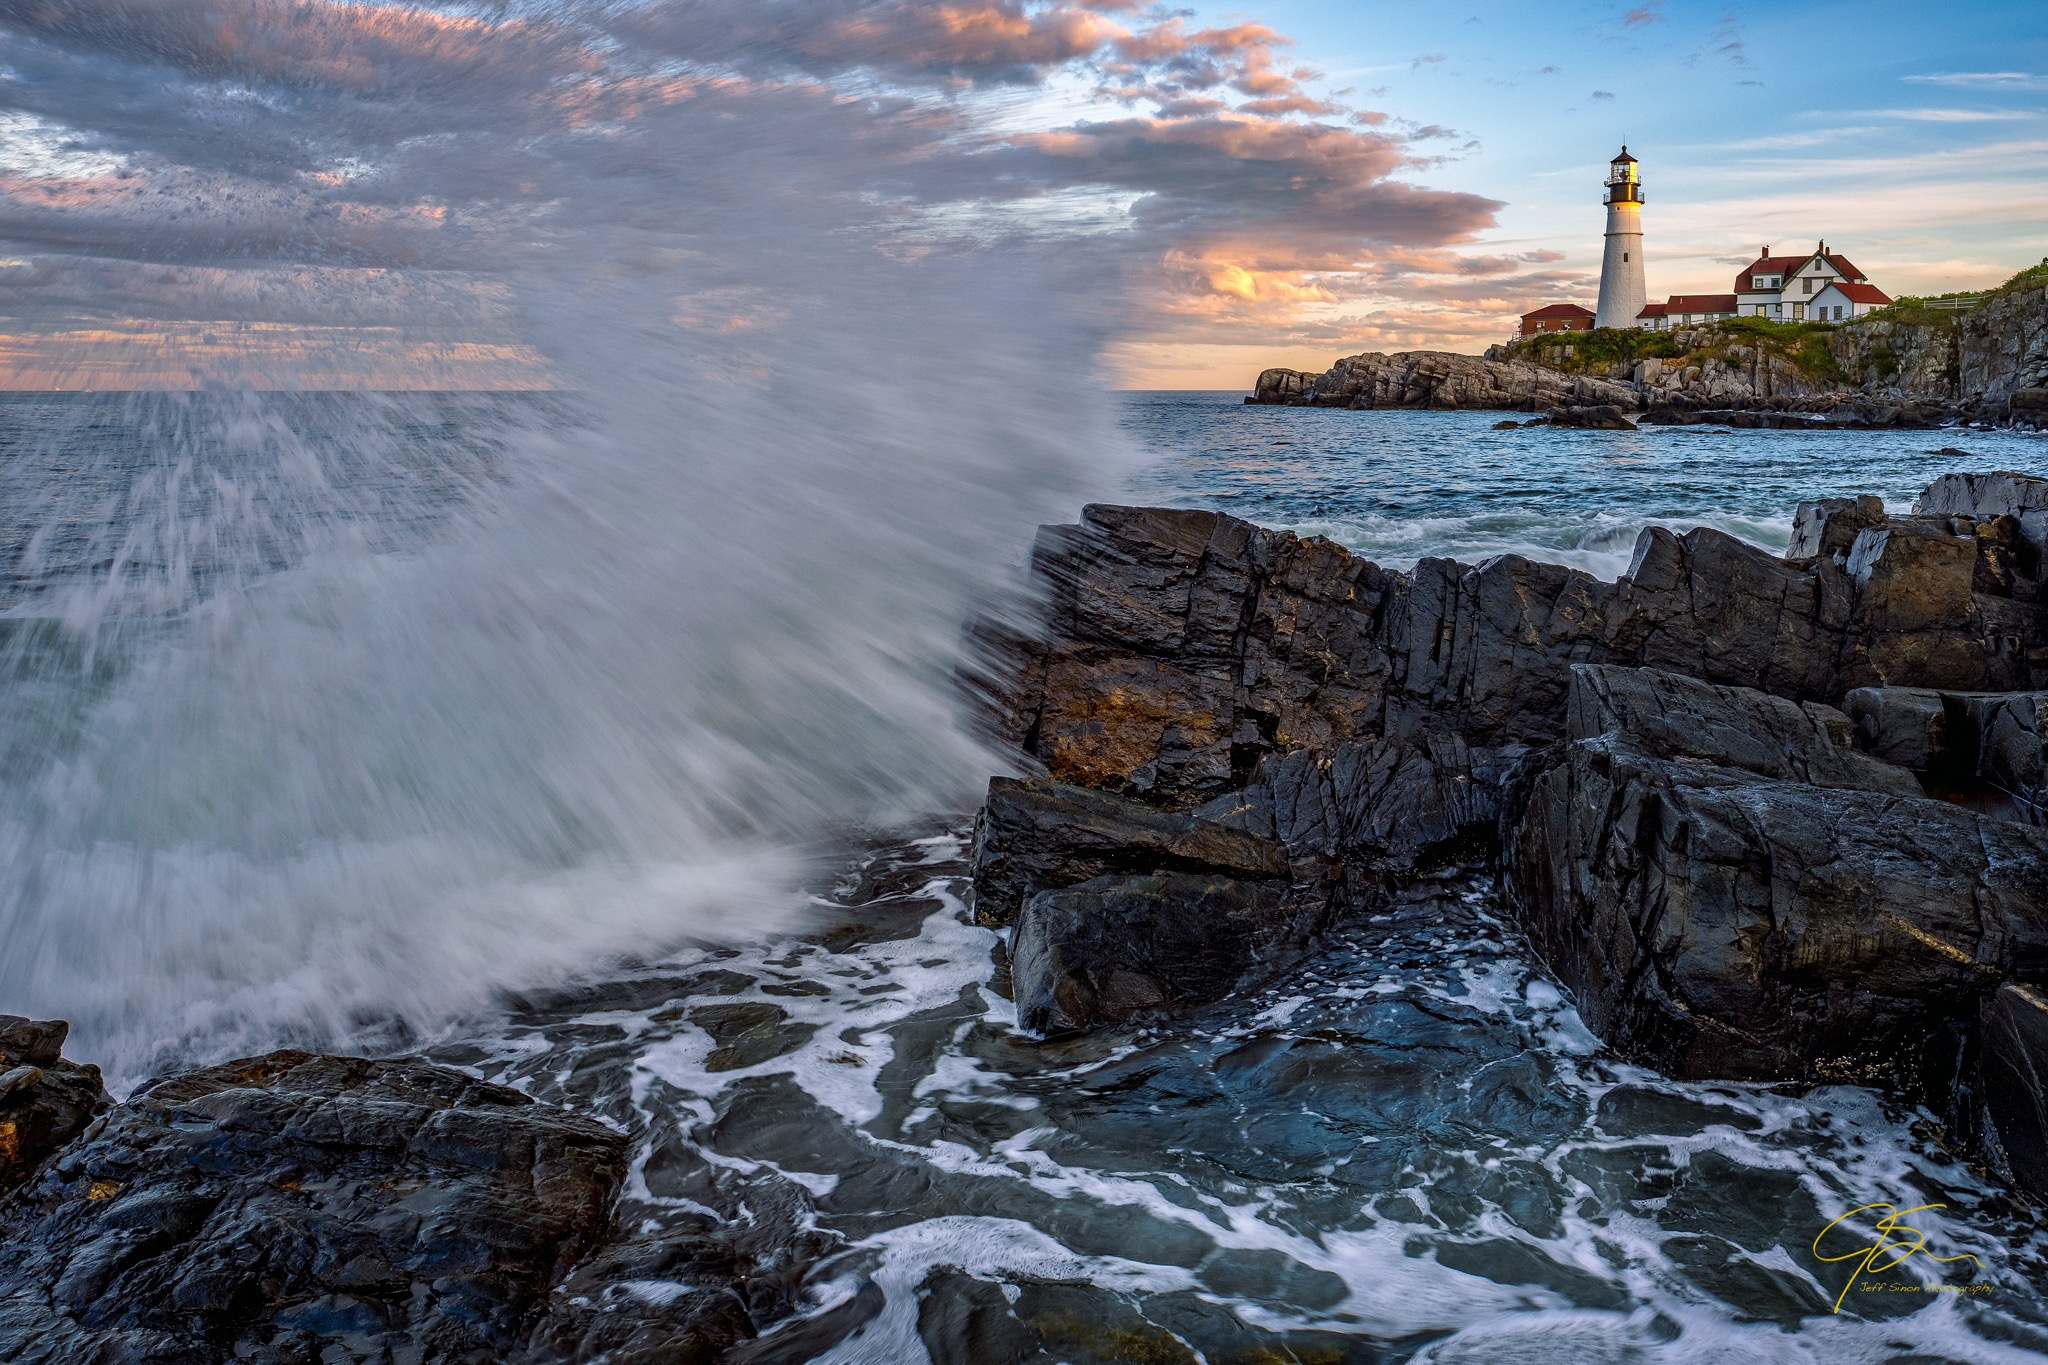 sunset and big crashing waves with Portland head light in the background